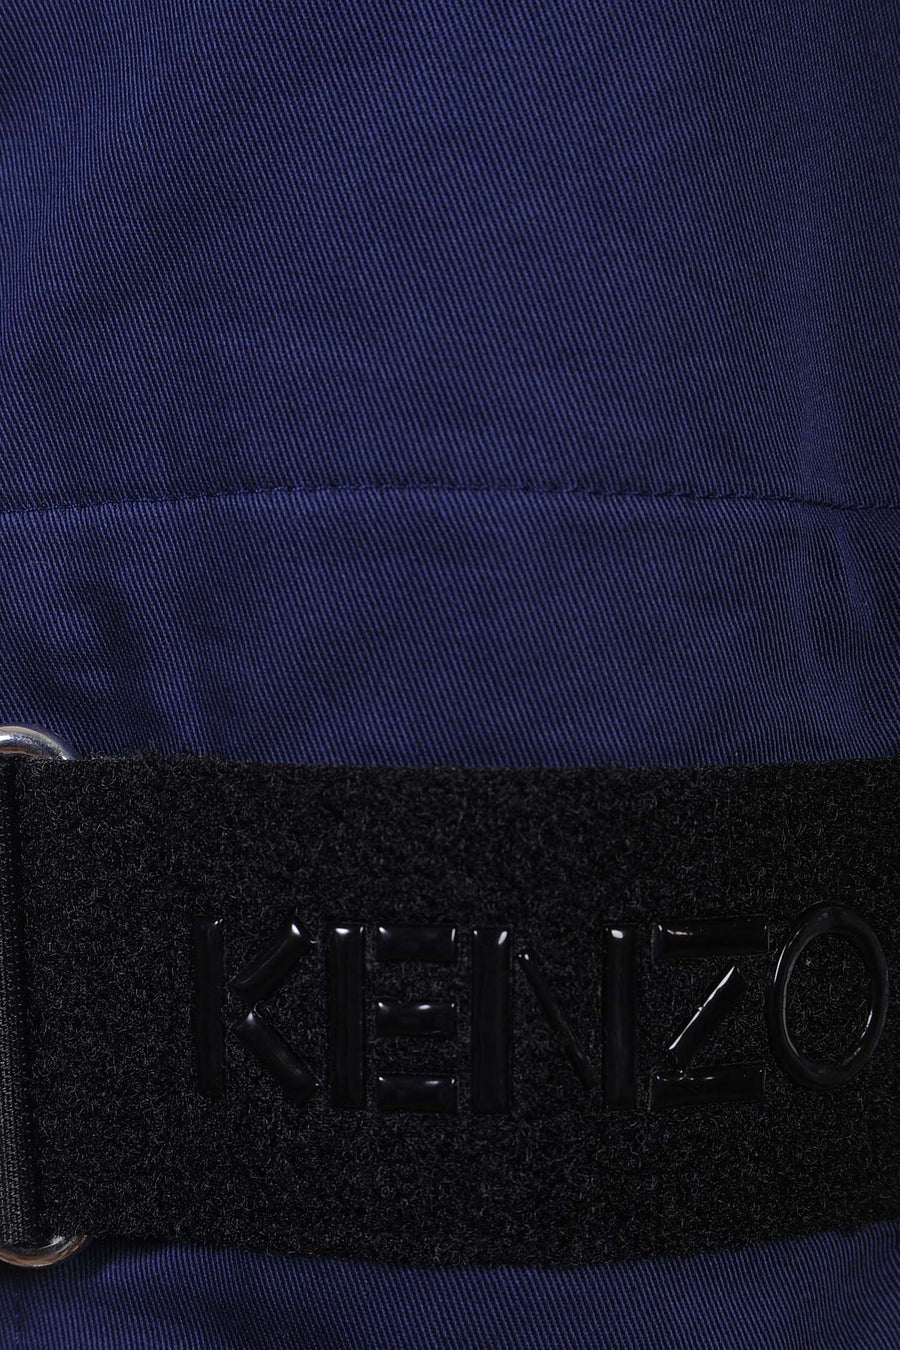 Workwear Jacket Kenzo Paris Cotton Pockets Collar Long Sleeve Dark Attire Men Fashion